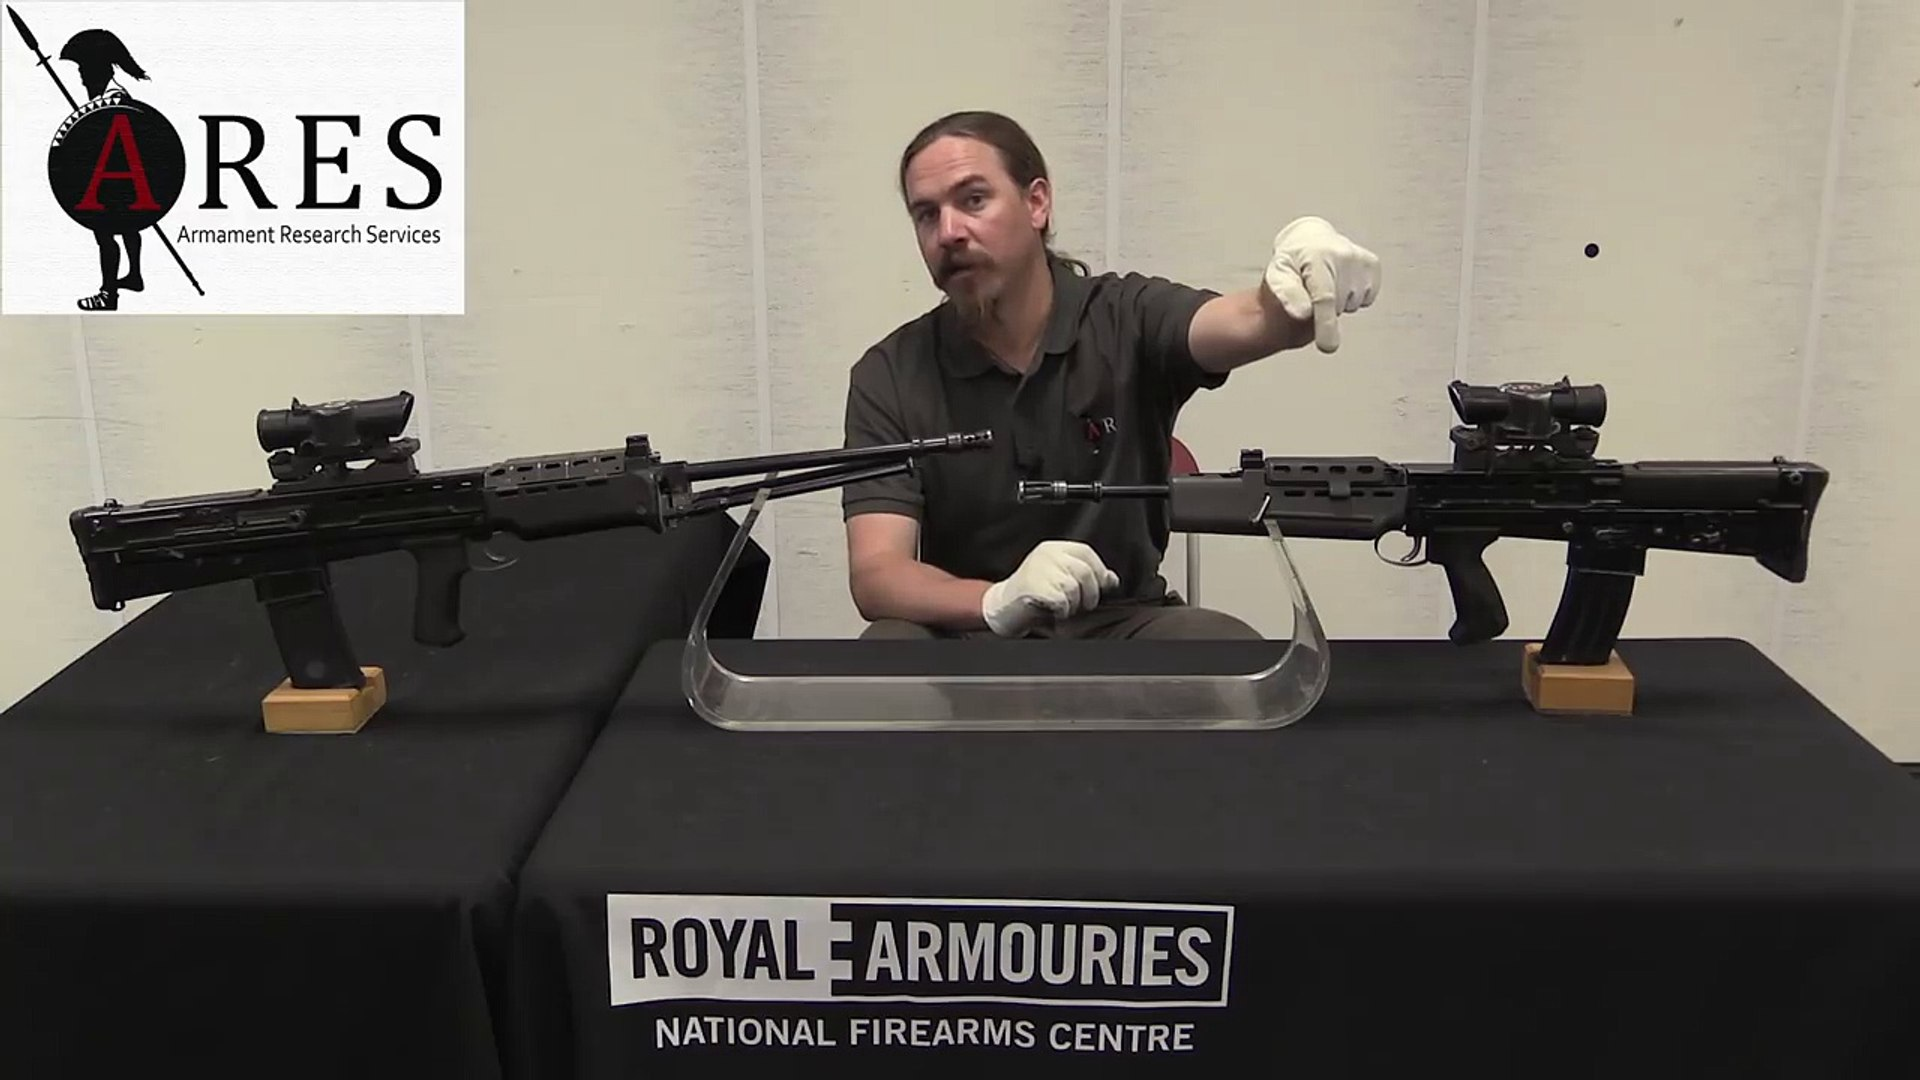 Forgotten Weapons - SA80 History - XL70 Series Final Prototypes (Individual Weapon and LSW)